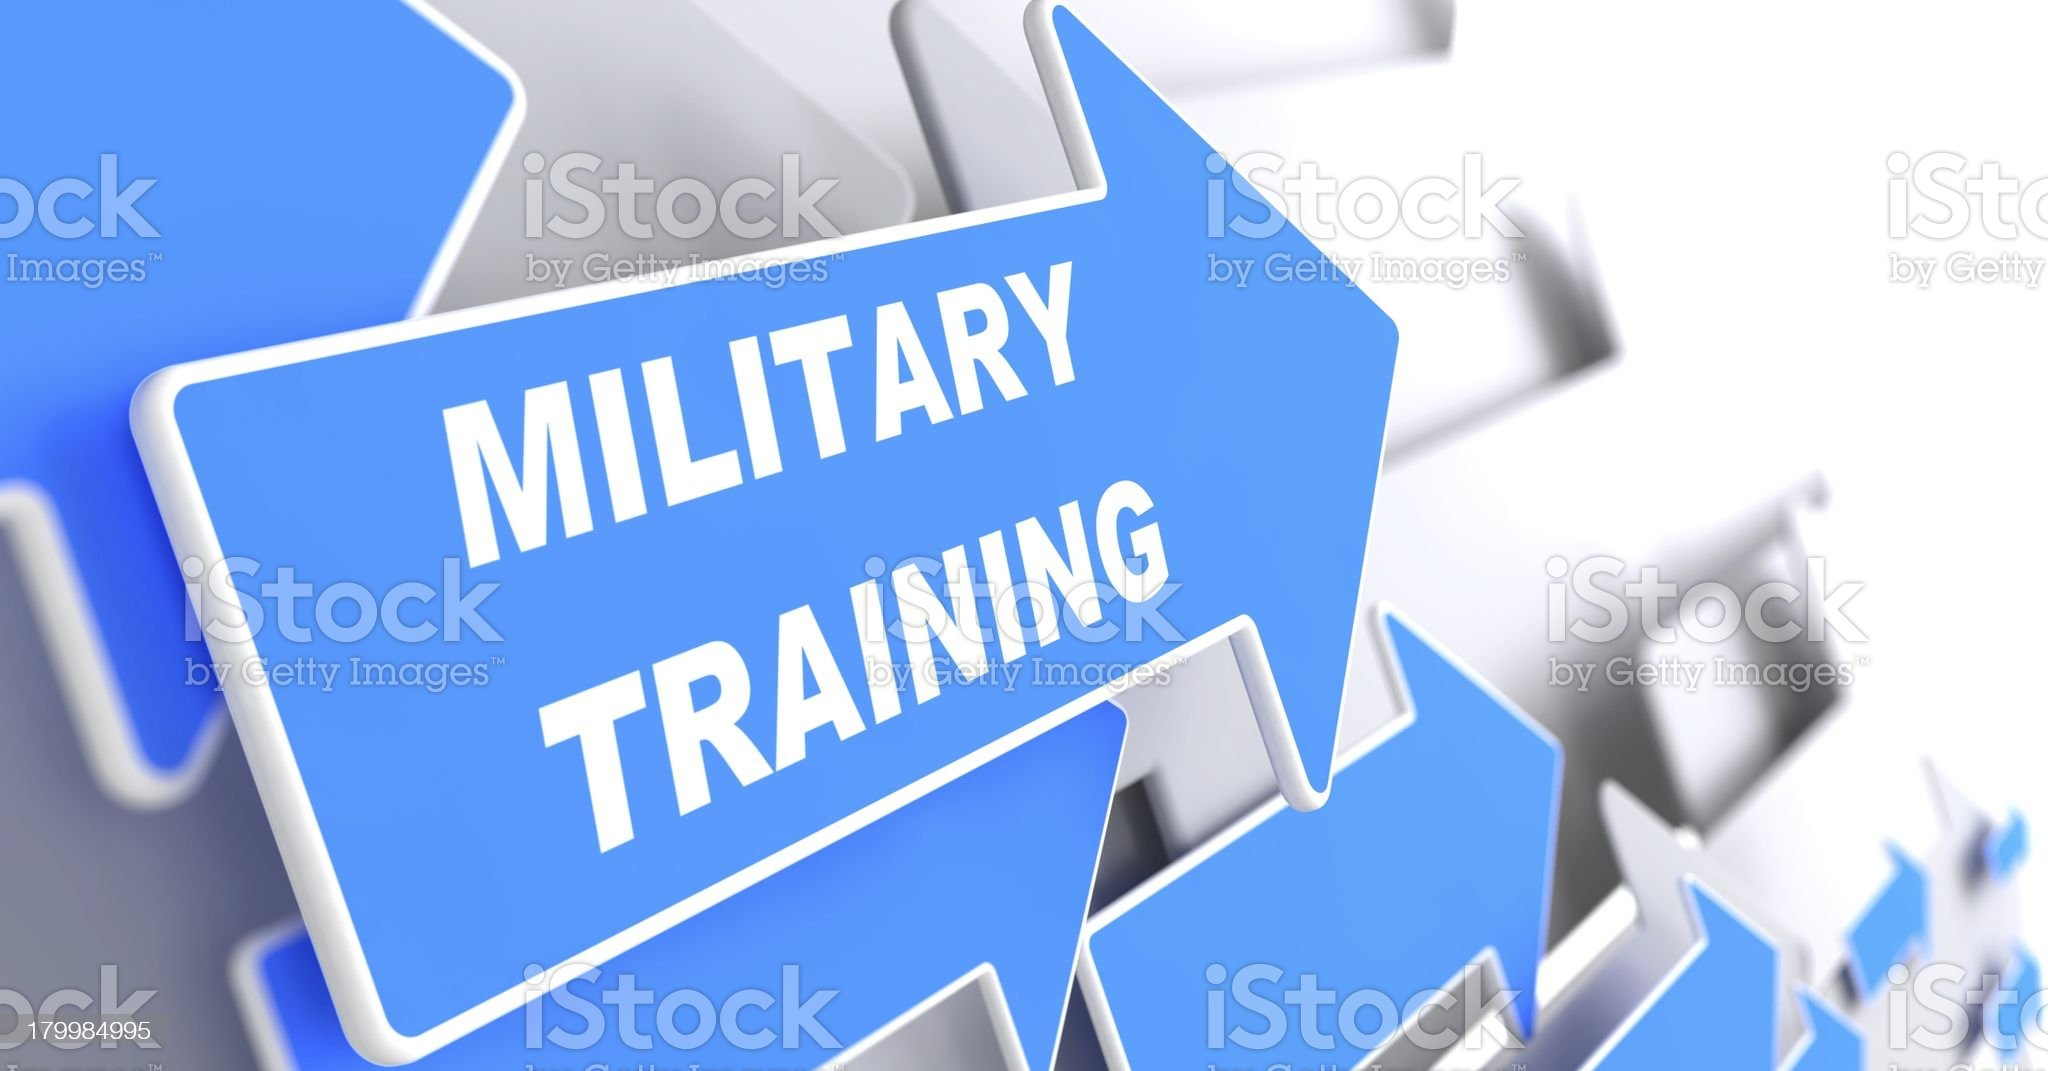 Military Training. Education Concept. royalty-free stock photo